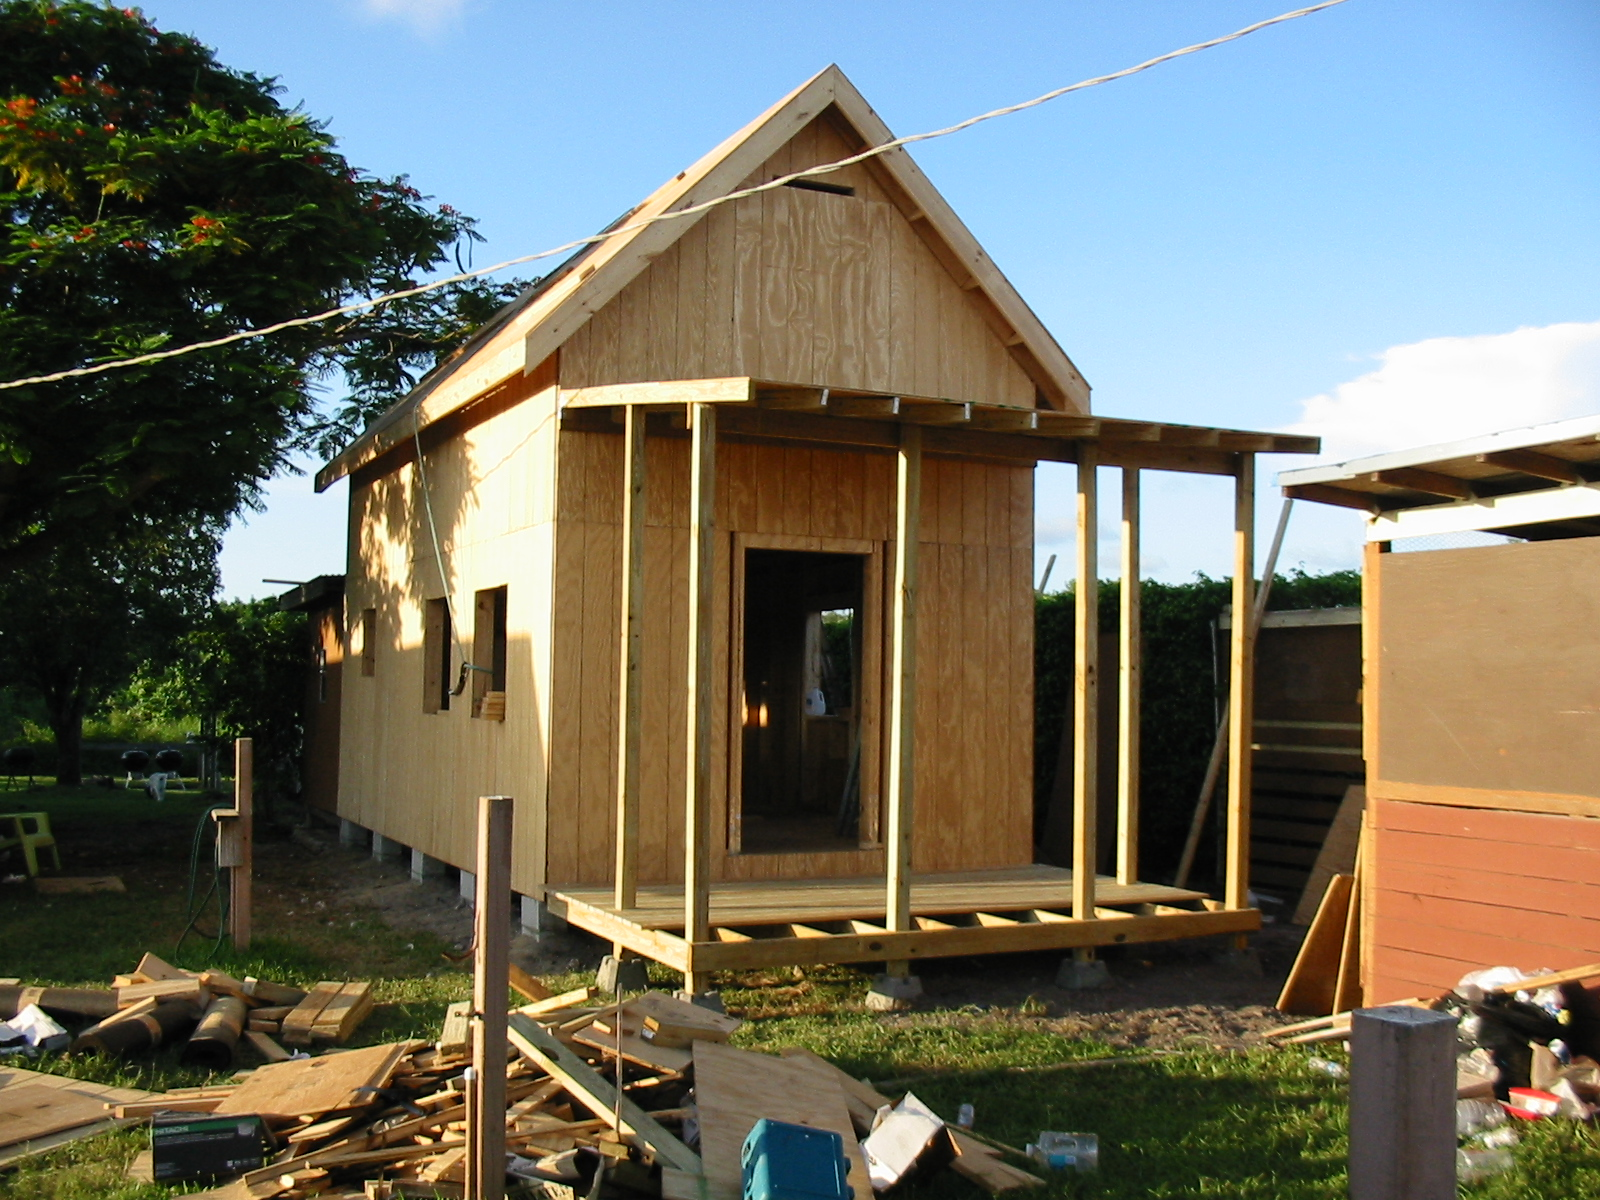 Tiny Home Designs Plans: Keith Is Building The 12×24 Homesteader's Cabin